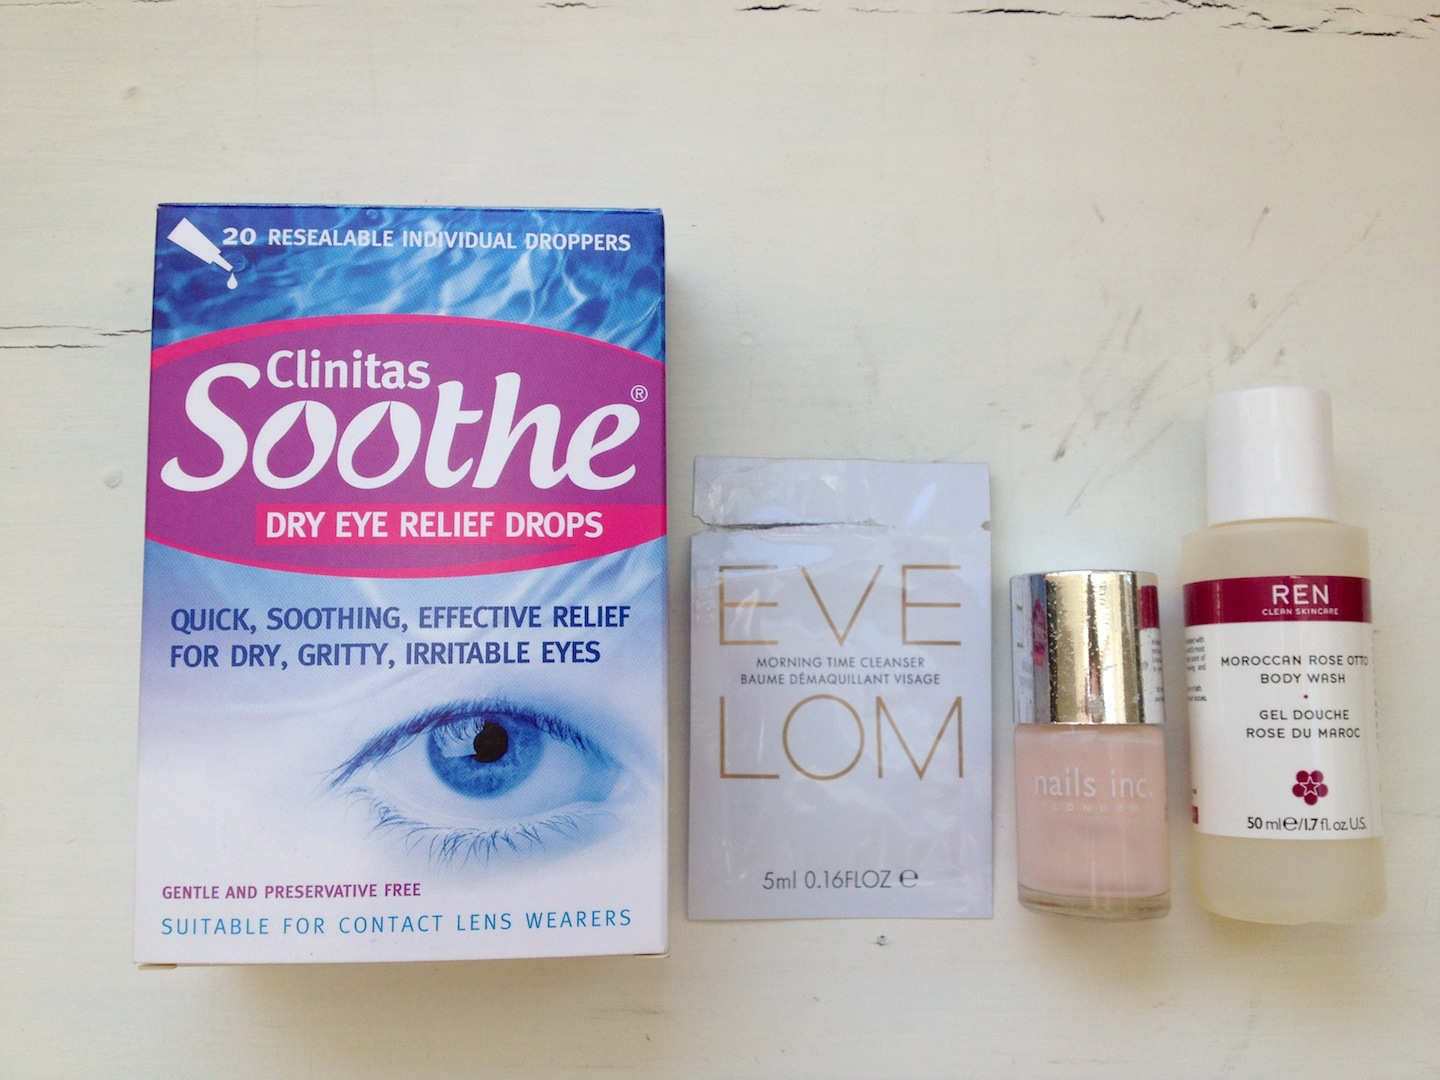 Eye Care Treatment Products from Top Brands - Boots Ireland